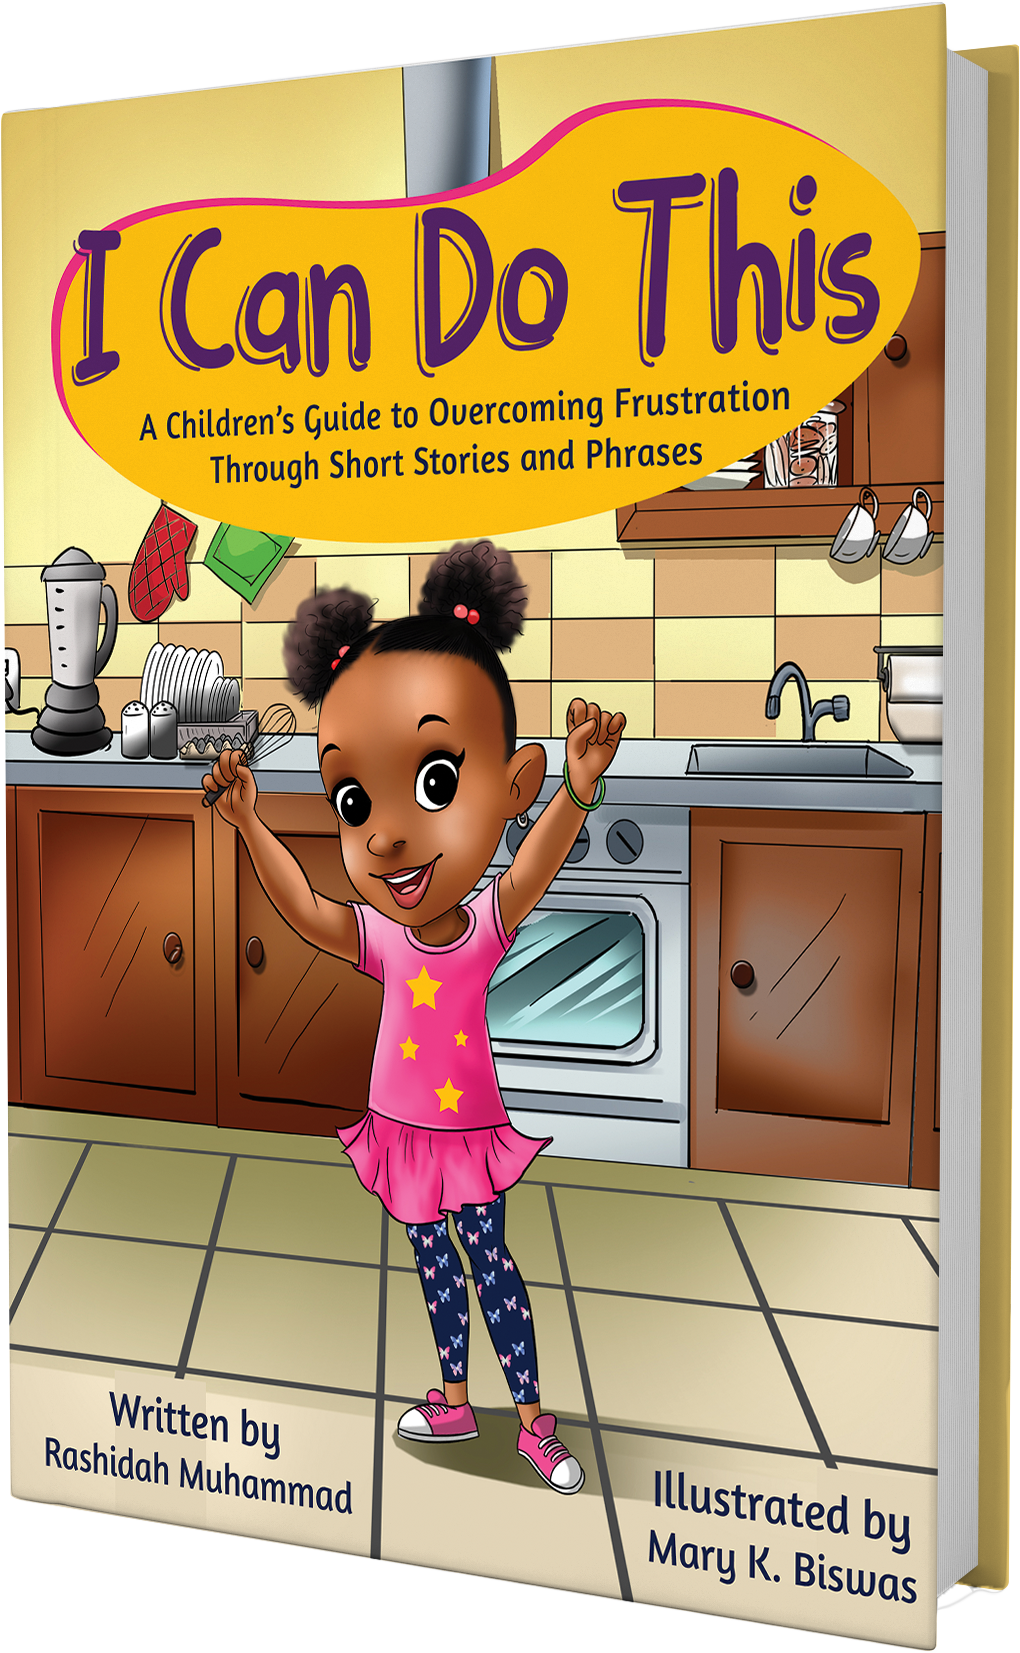 NonProfit Founder and New Author Releases  Powerful Affirmation Book for Children